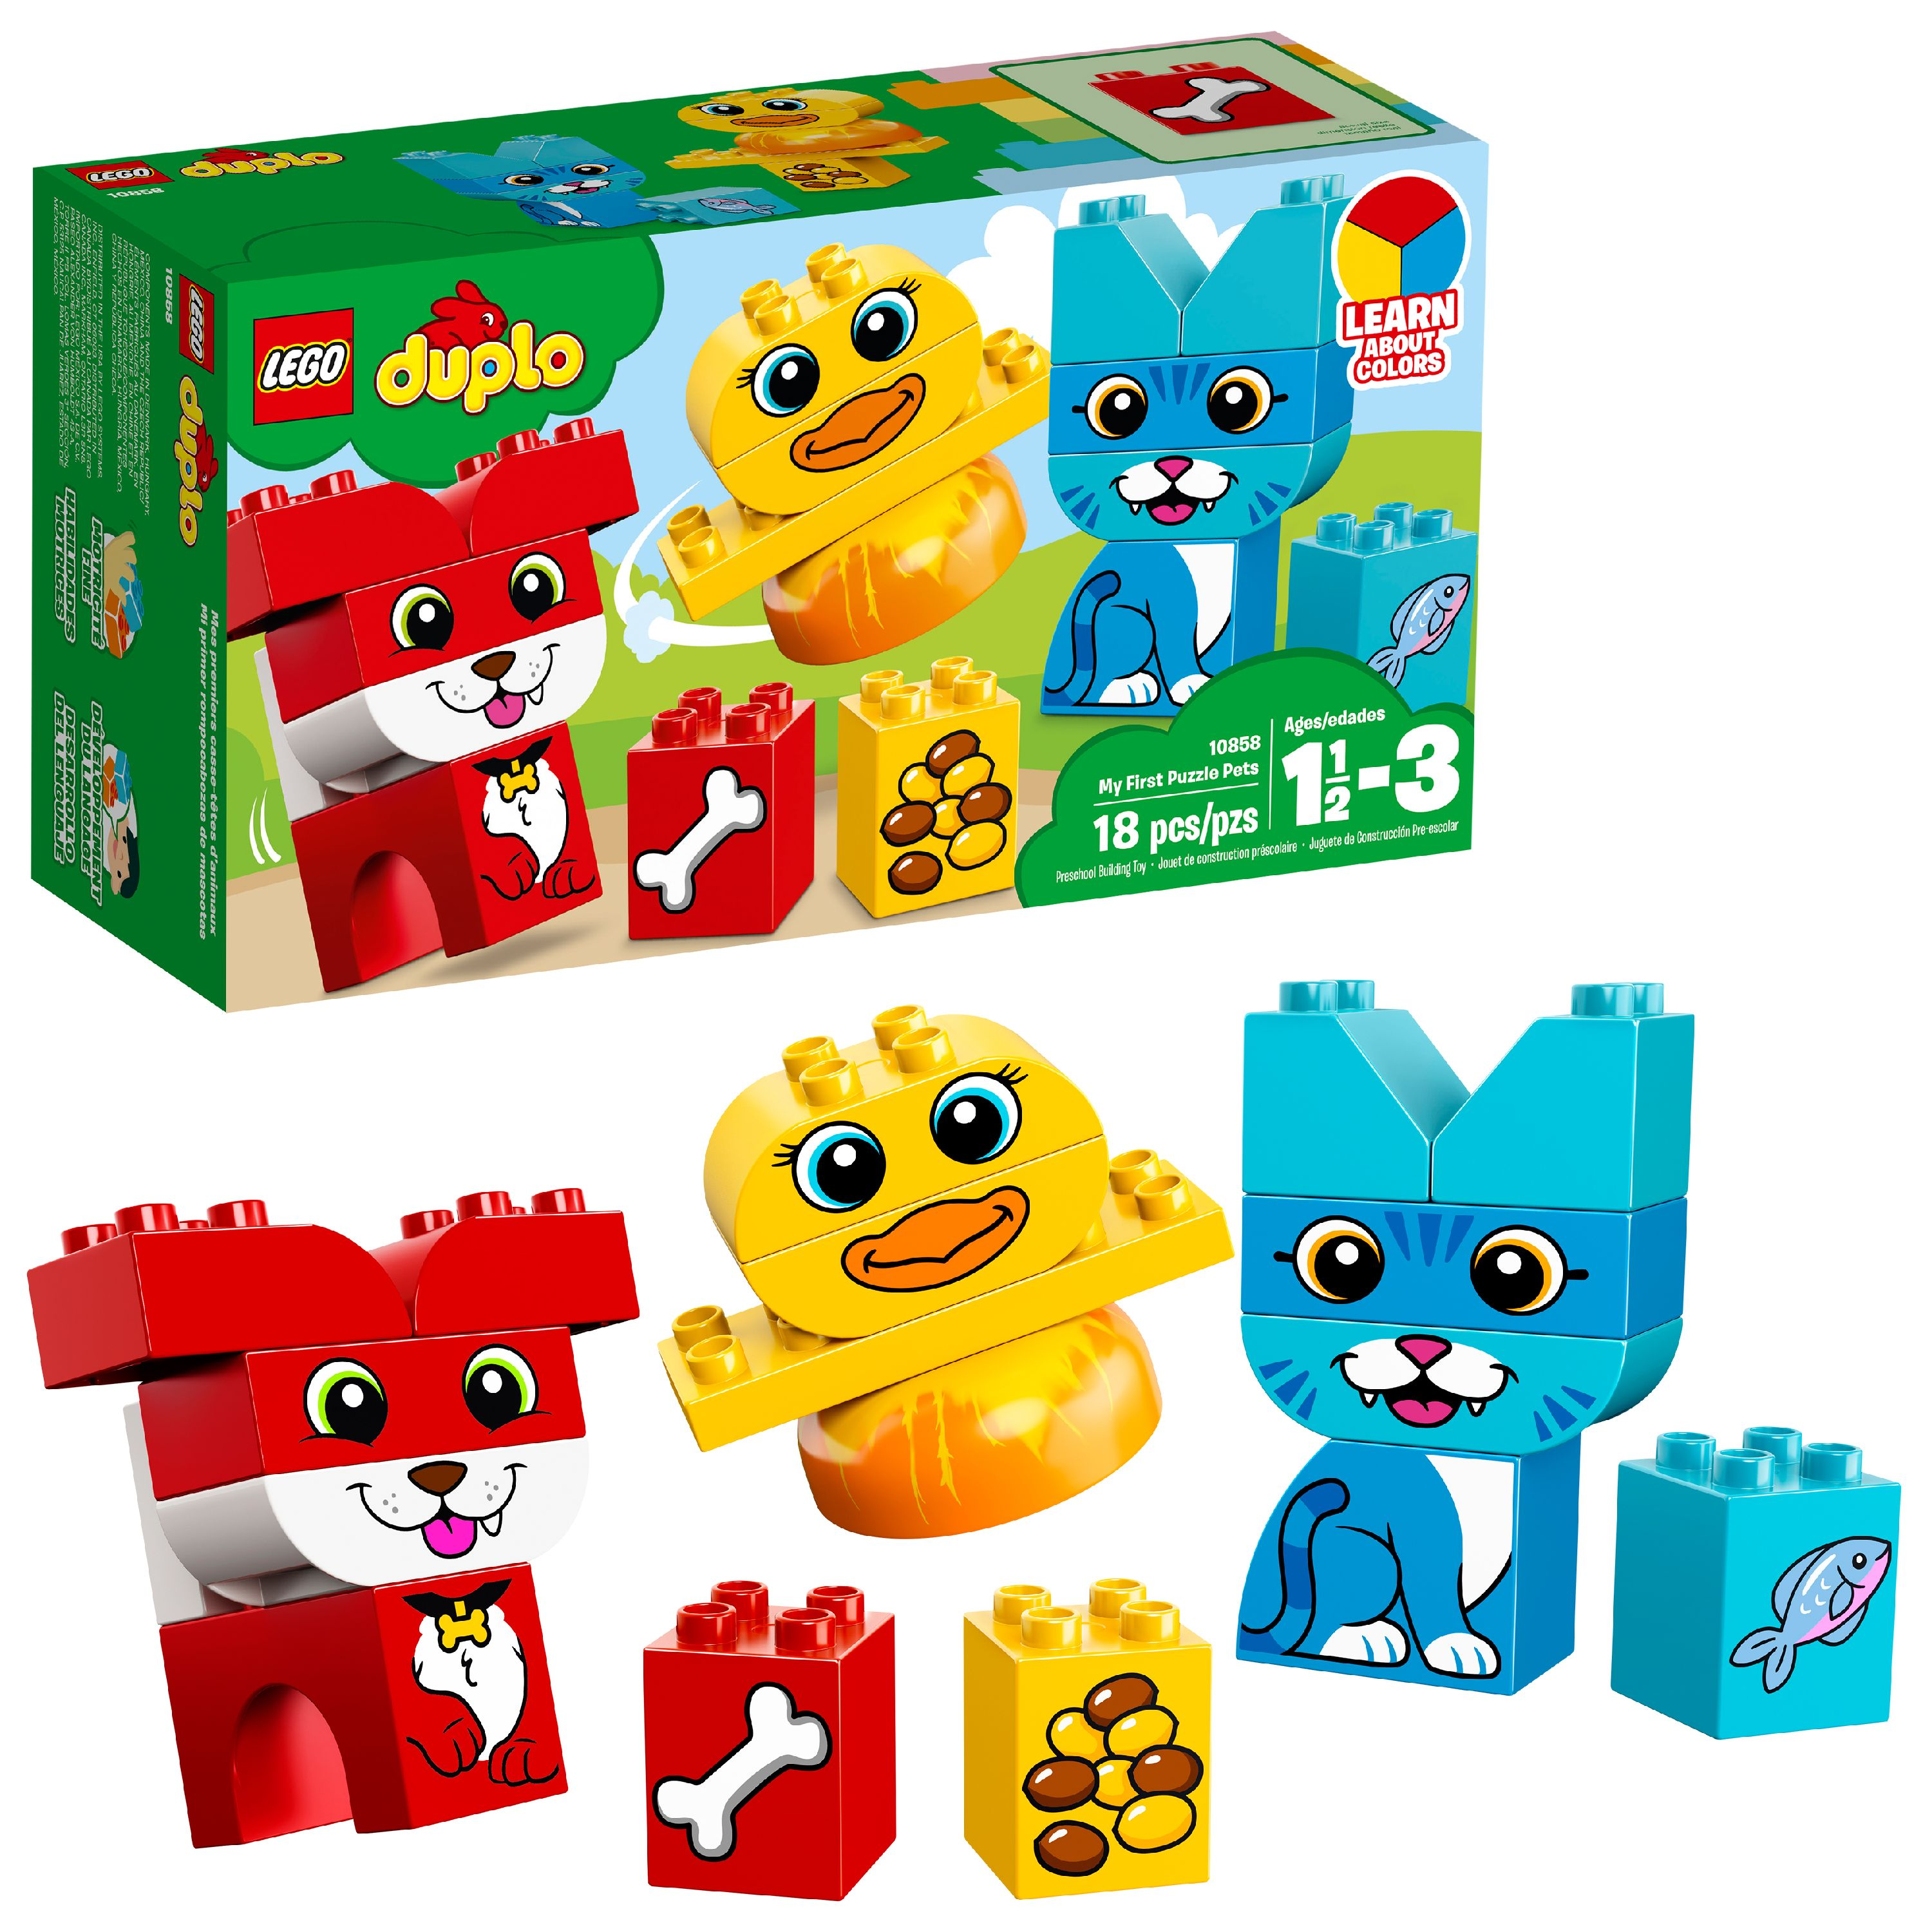 LEGO DUPLO My First My First Puzzle Pets 10858 (18 Pieces)